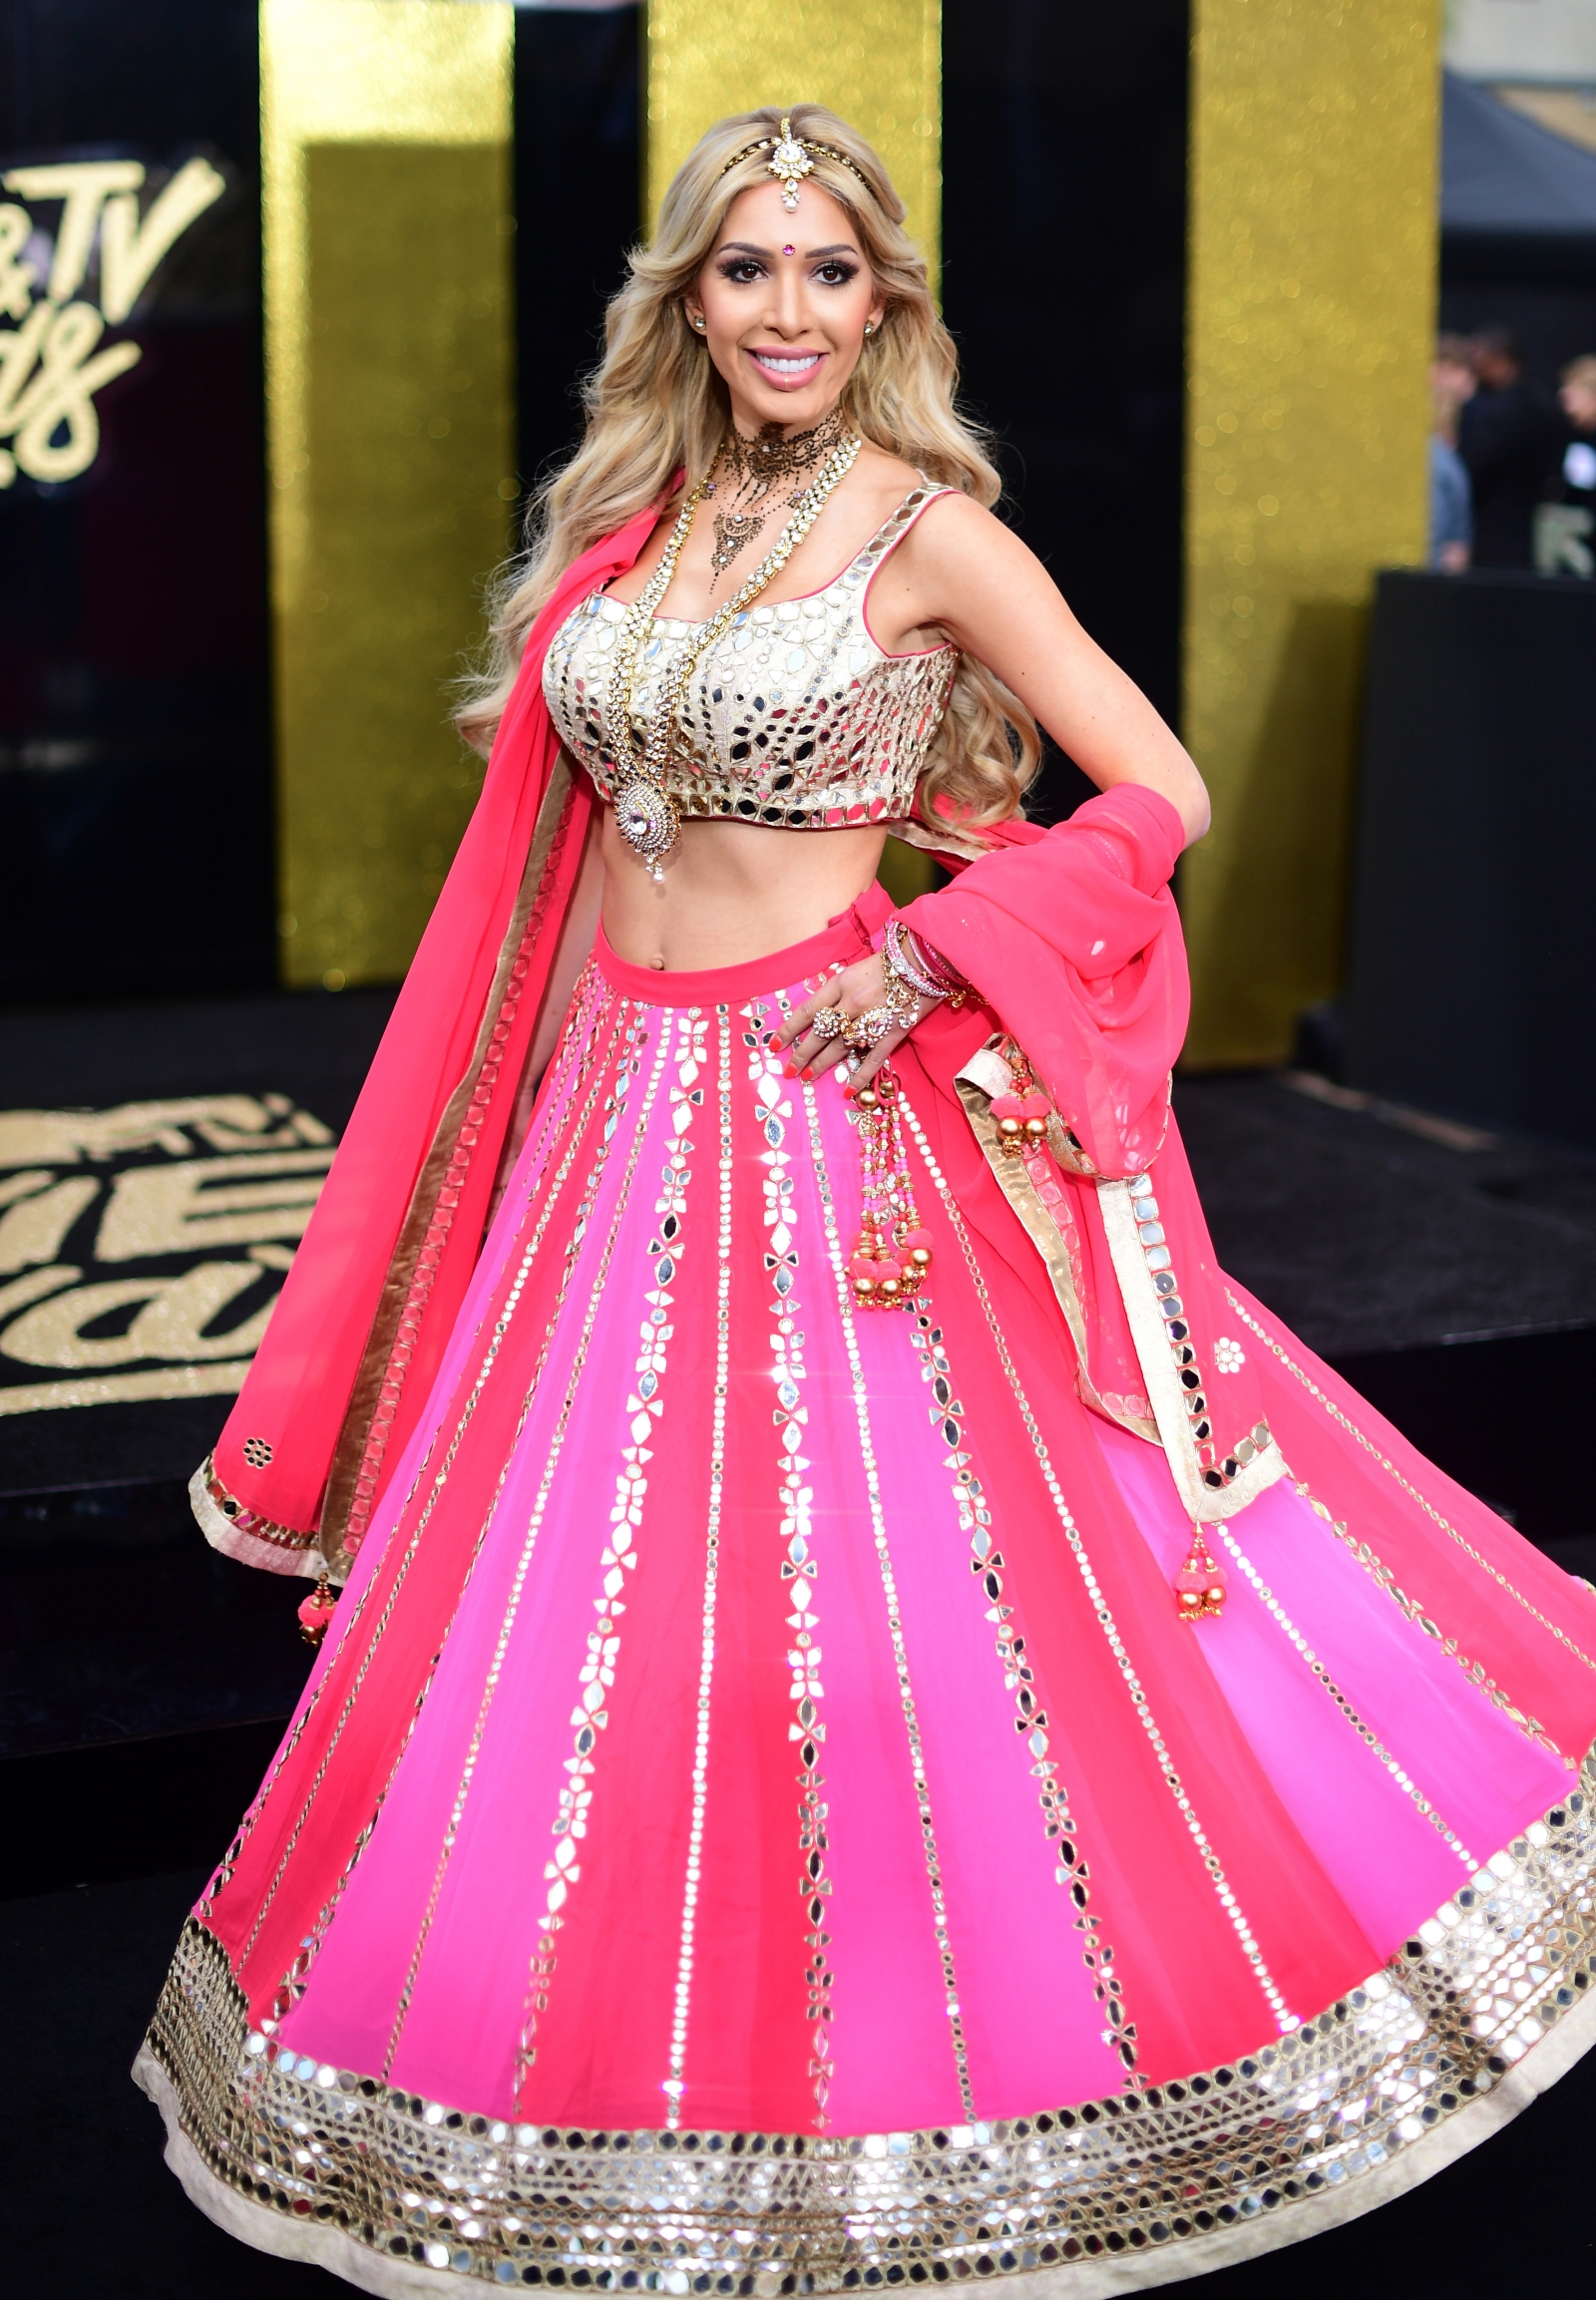 MTV Movie Awards 2017: From Farrah Abraham's controversial Bollywood look to Amber Rose's bold style